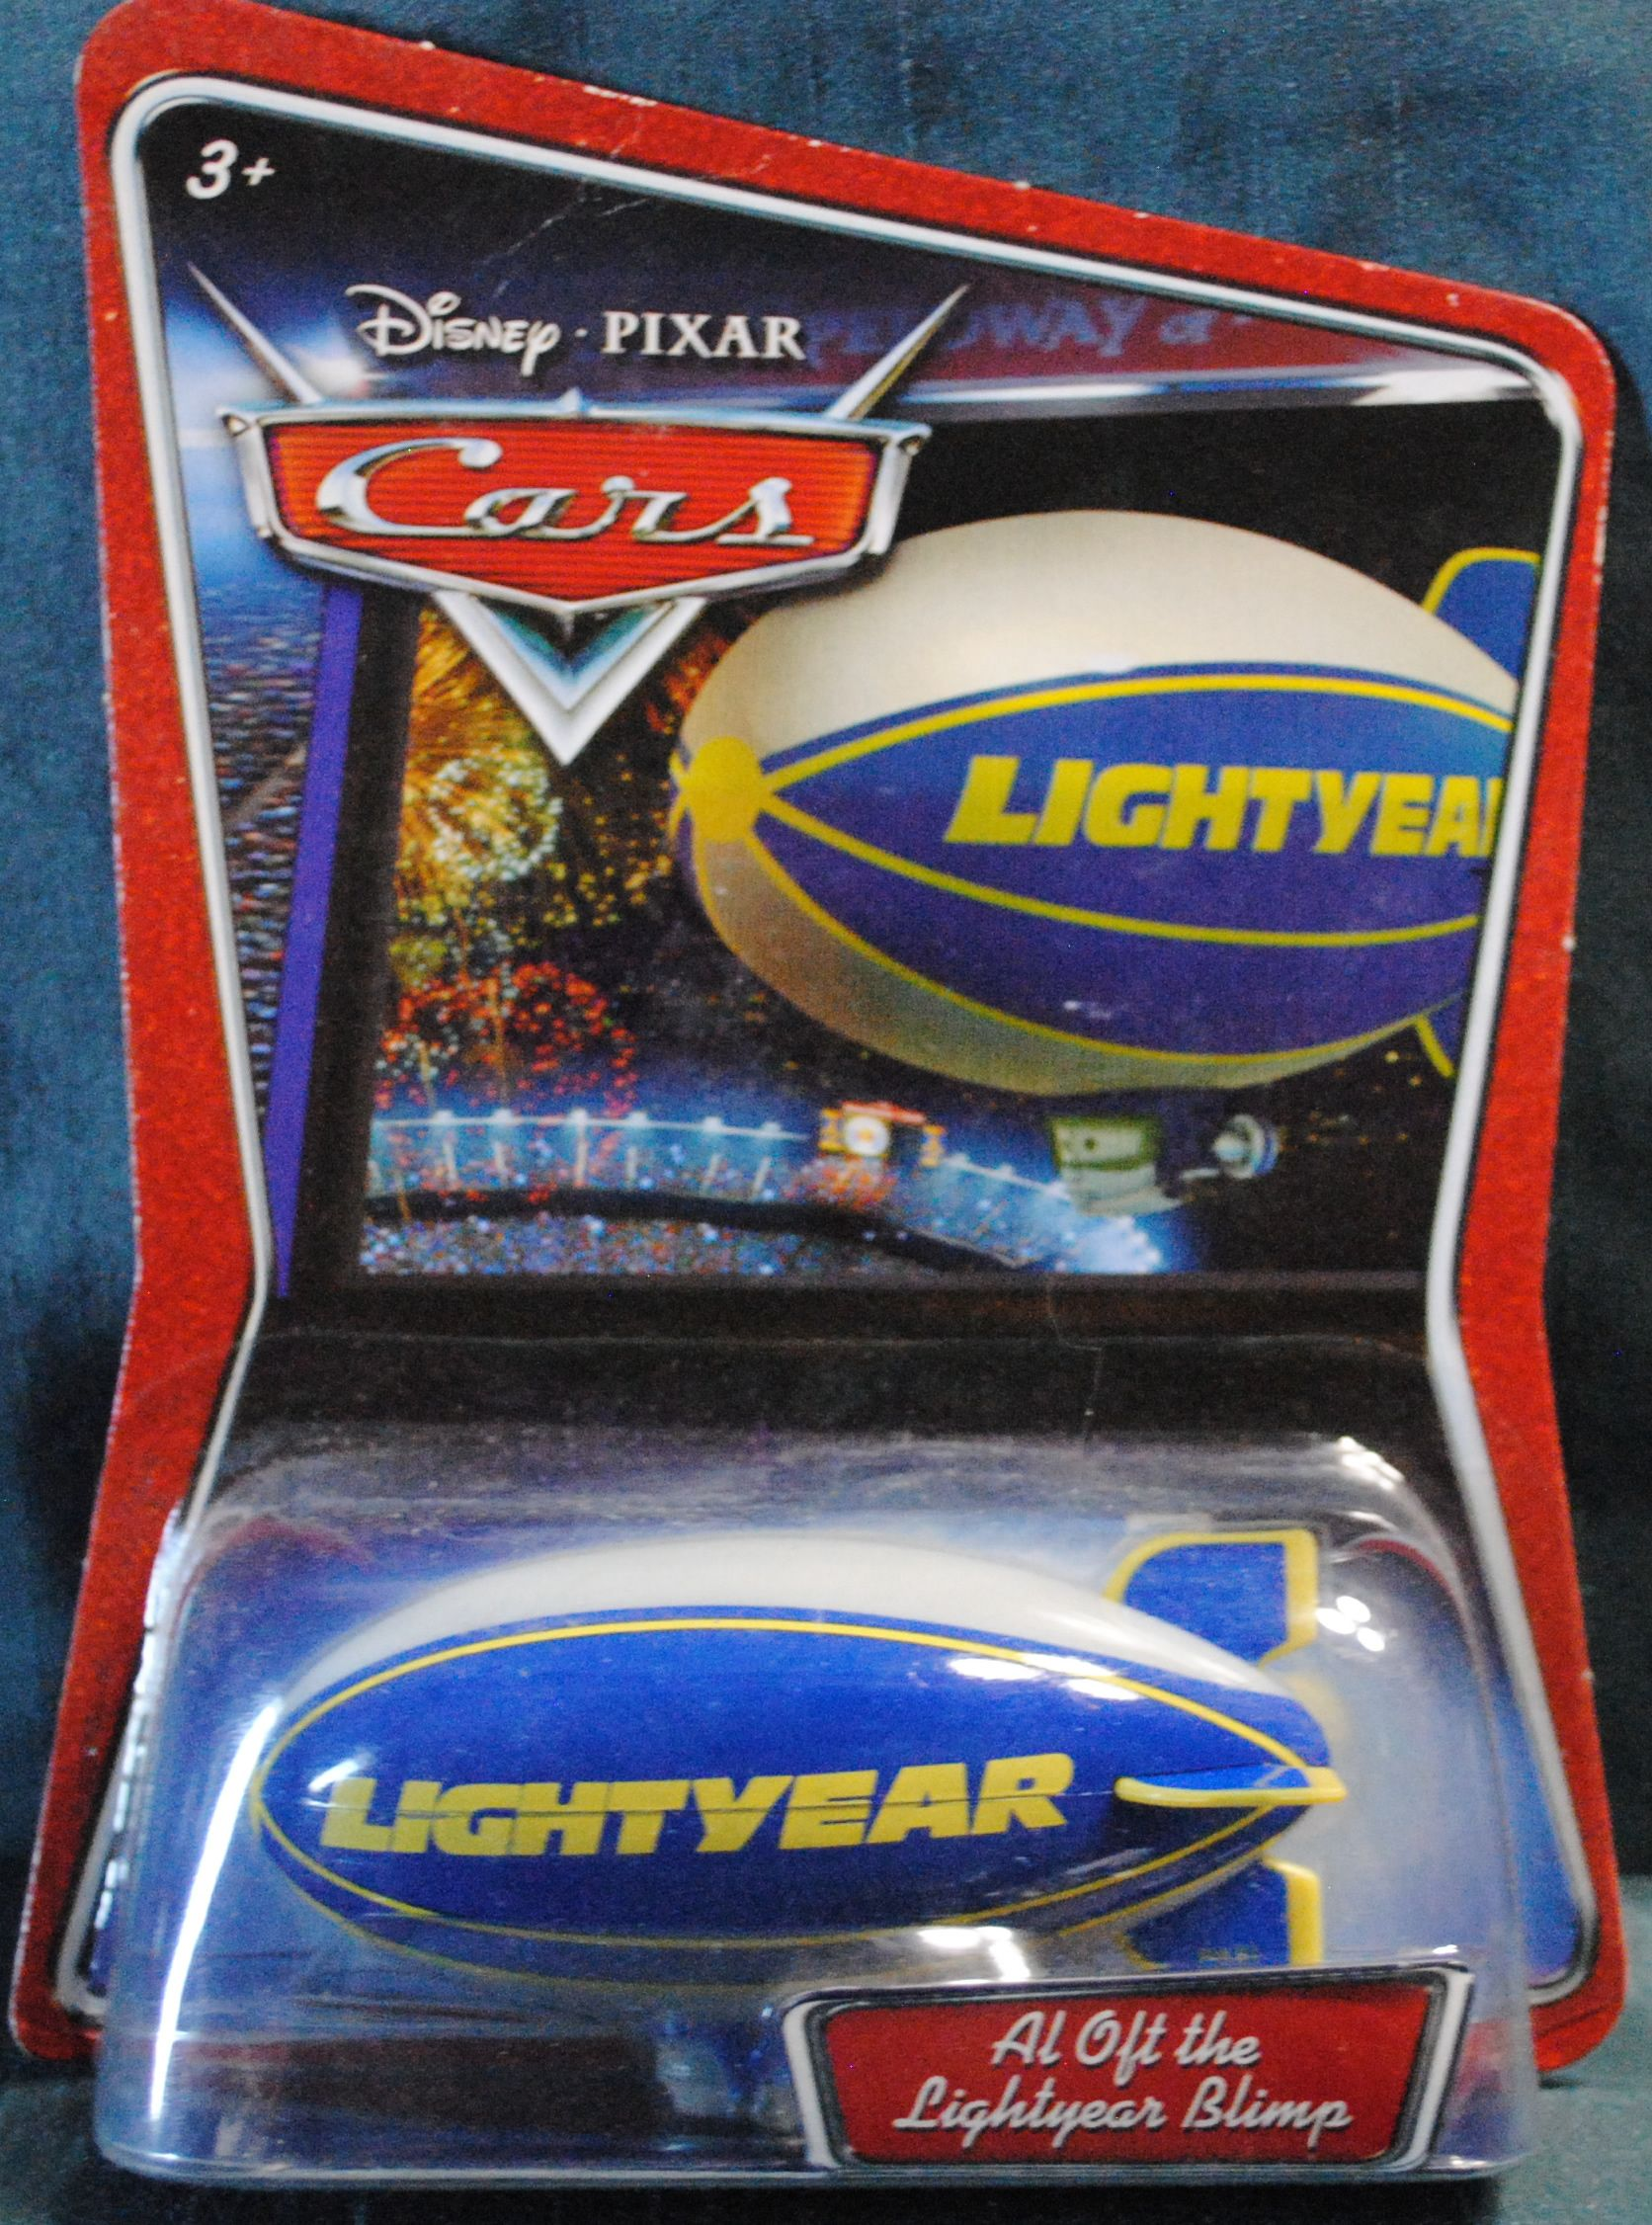 CARS PIXAR The Lightyear Blimp Action Figure - Mattel (2008) front image (front cover)